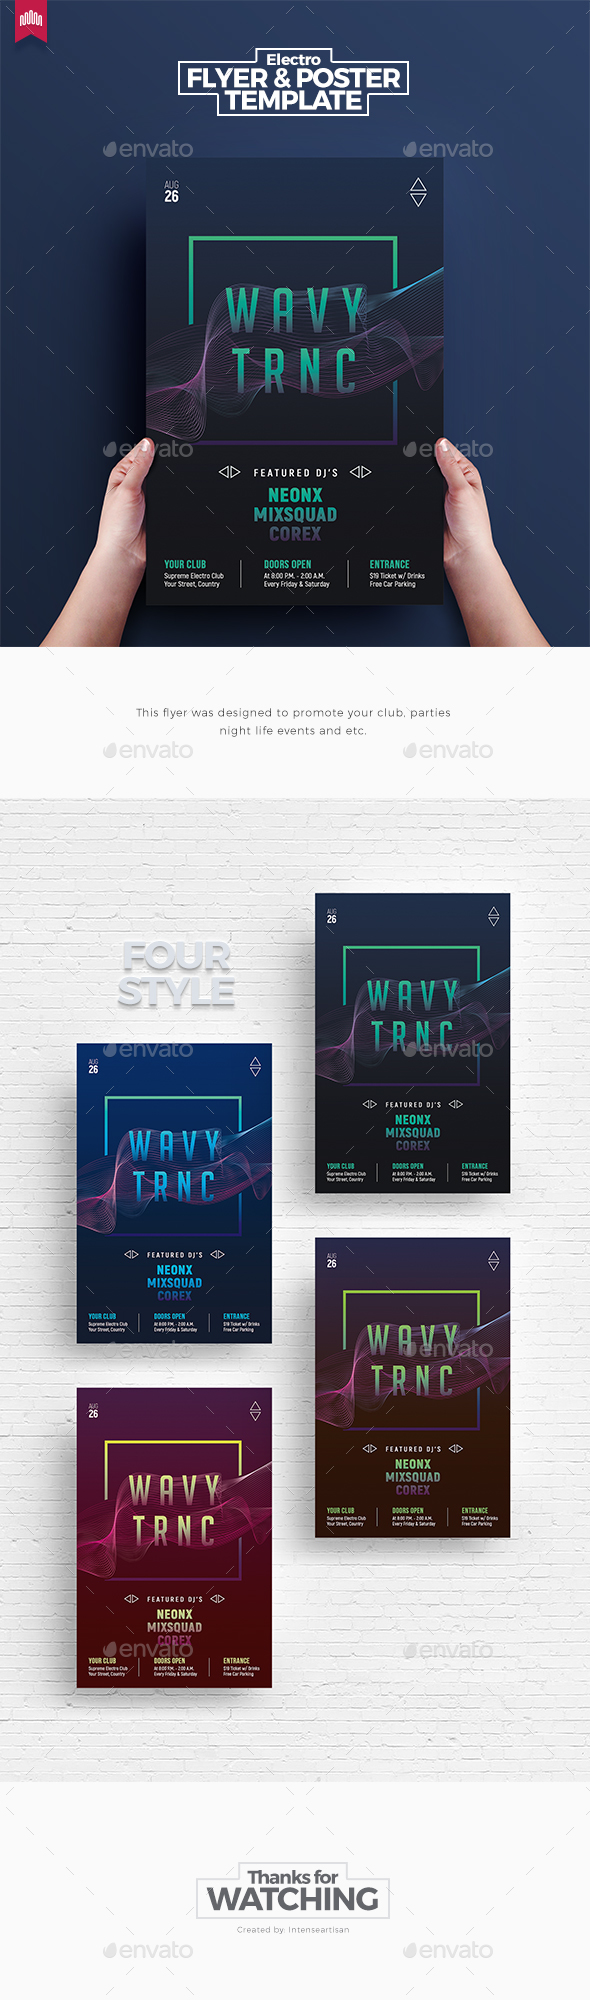 Wavy Trance - Flyer Template - Clubs & Parties Events